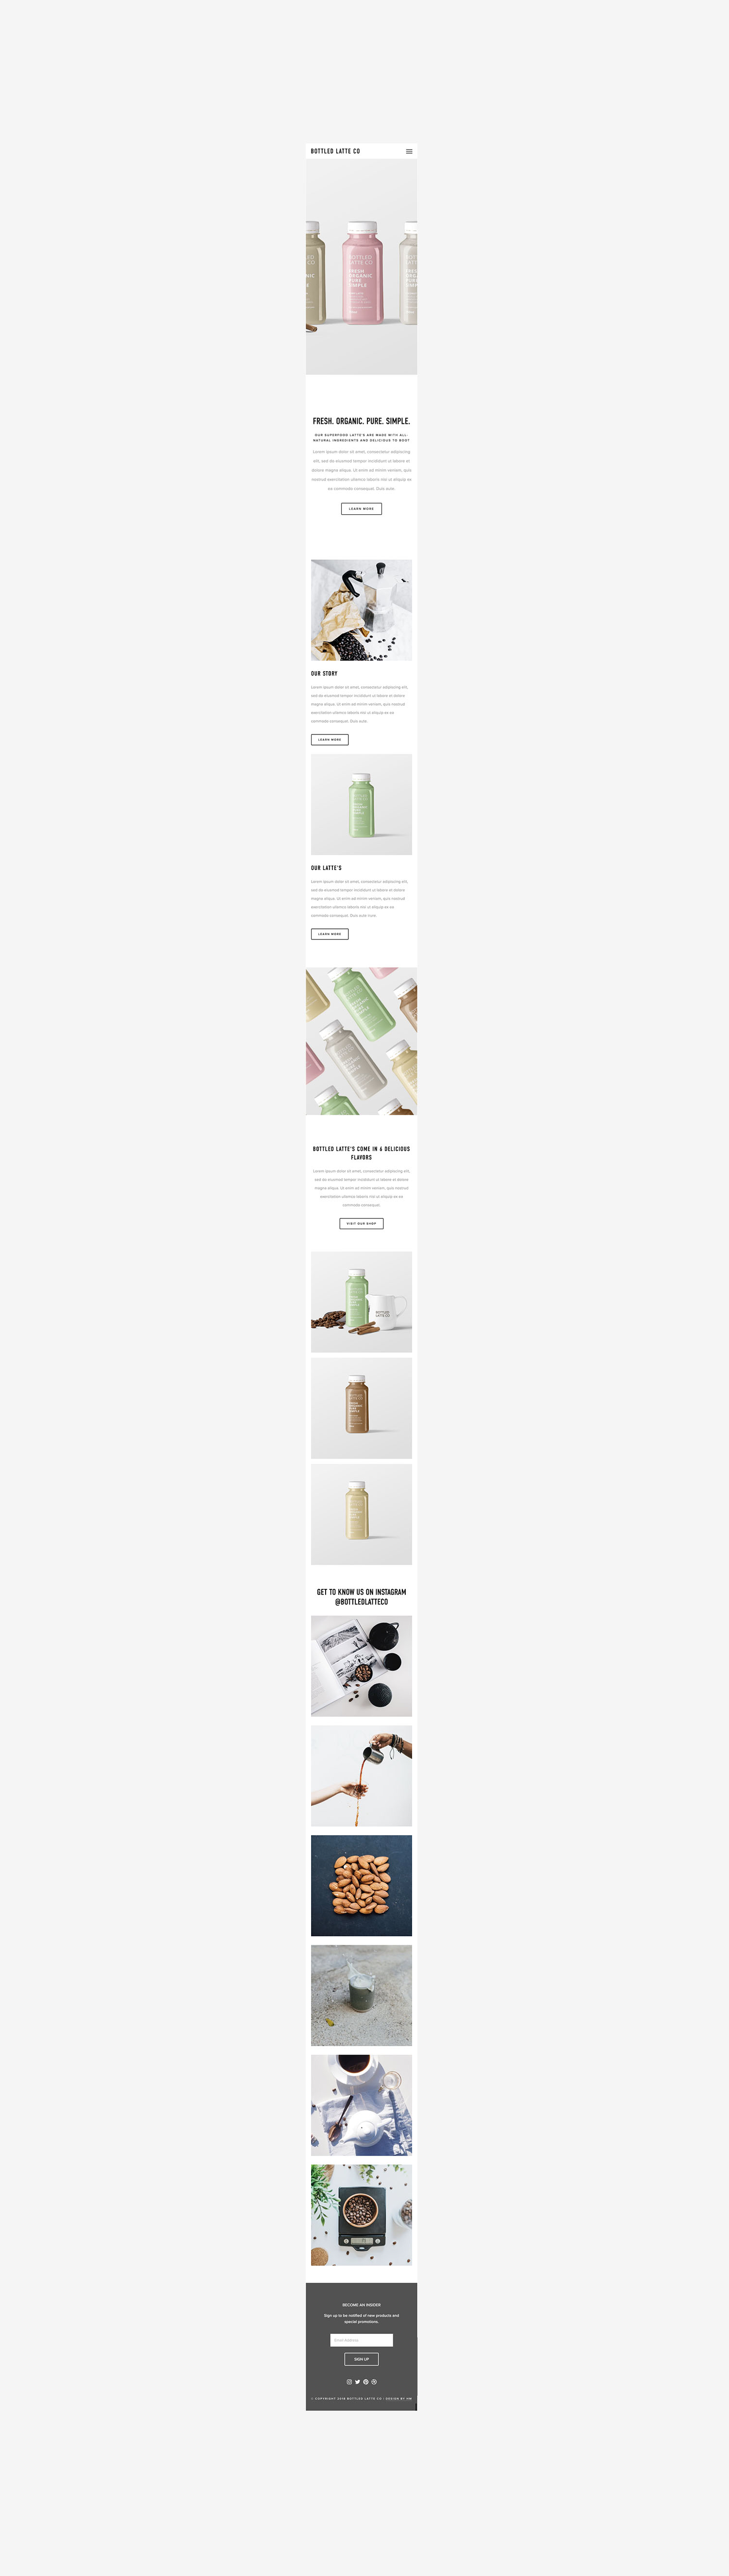 Bottled-Latte-Co-Superfood-Lattes-Portland-Website-Mobile-Responsive-Design-Squarespace-Heather-Maehr